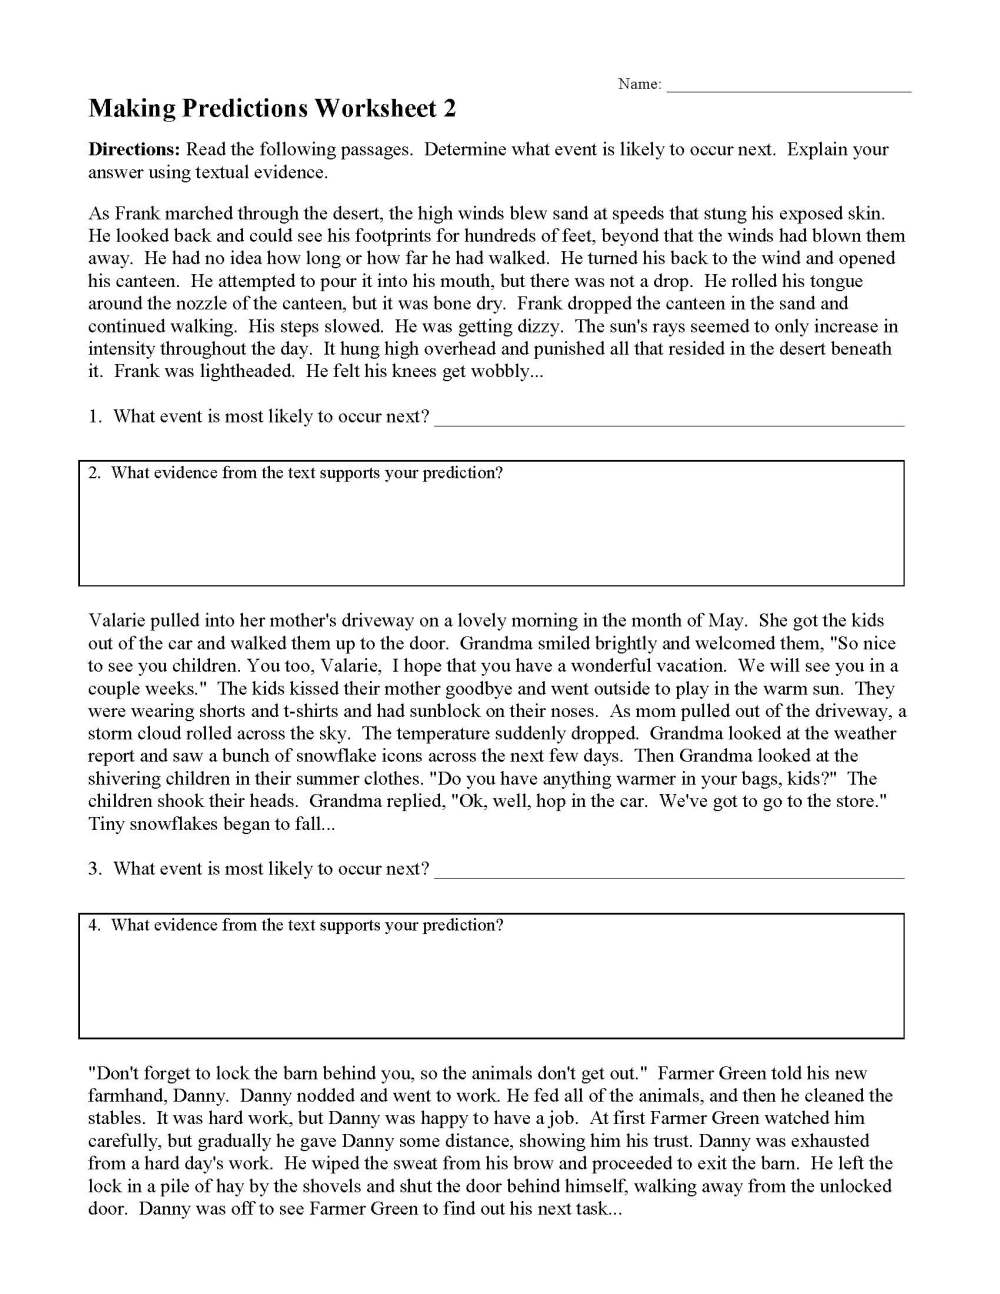 medium resolution of Making Predictions Worksheets and Lessons   Ereading Worksheets